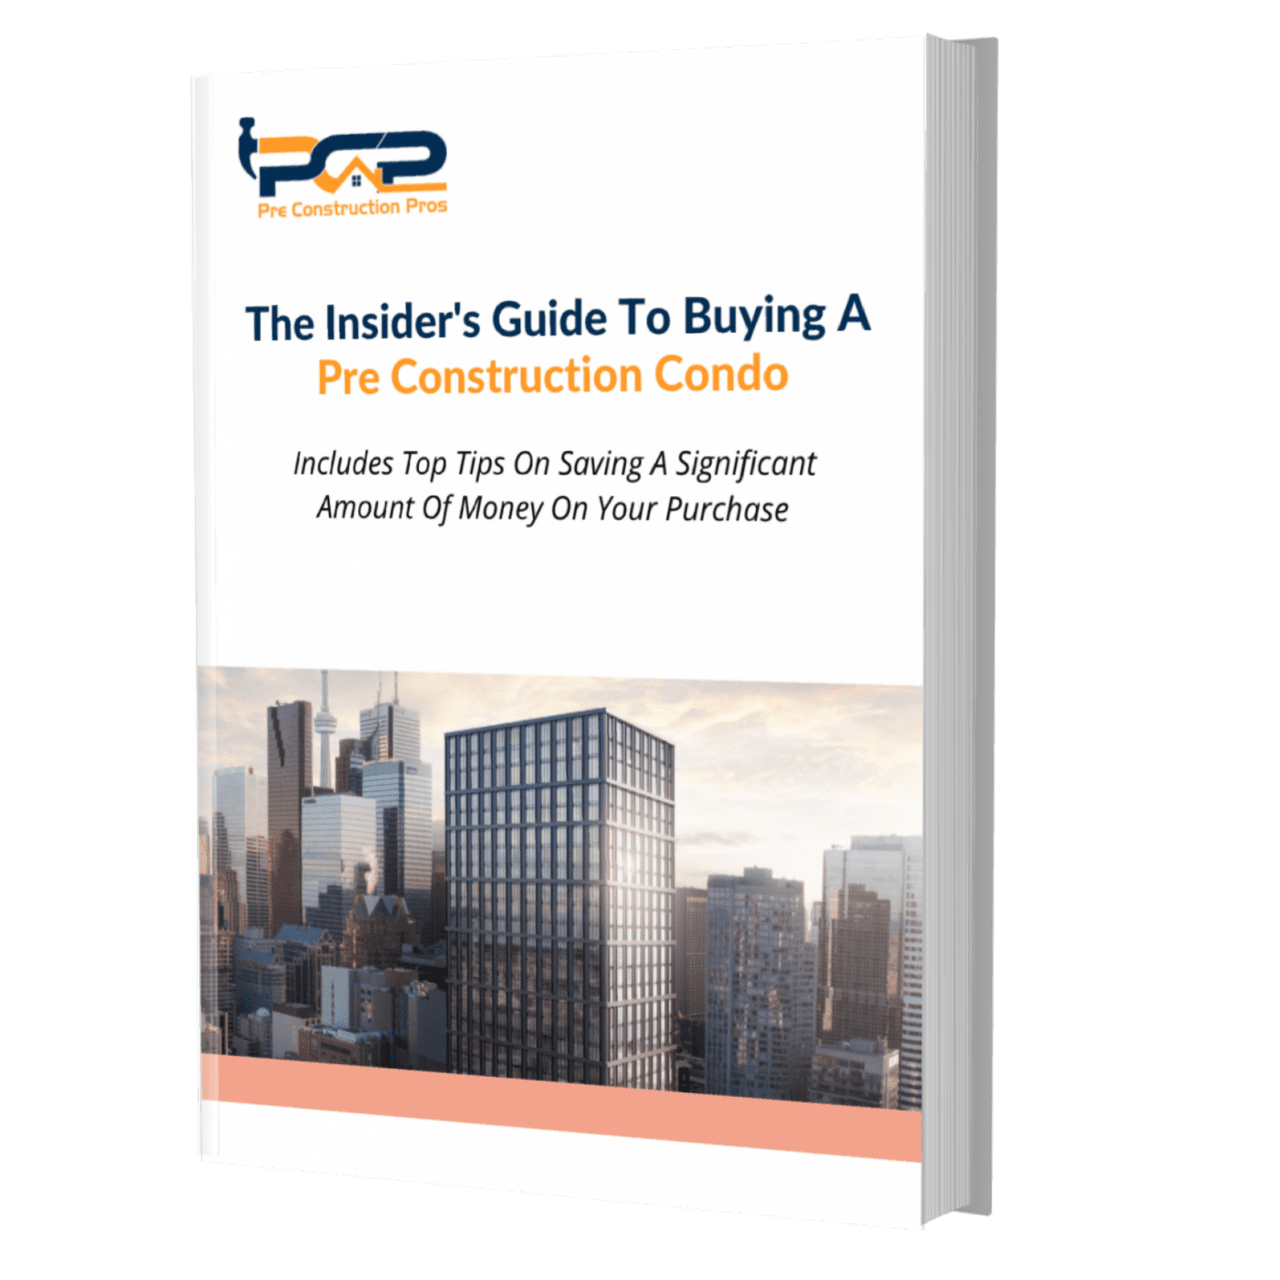 The Insider's Guide To Choosing Pre Construction ProjectsAnd Saving Massive Amounts Of Money